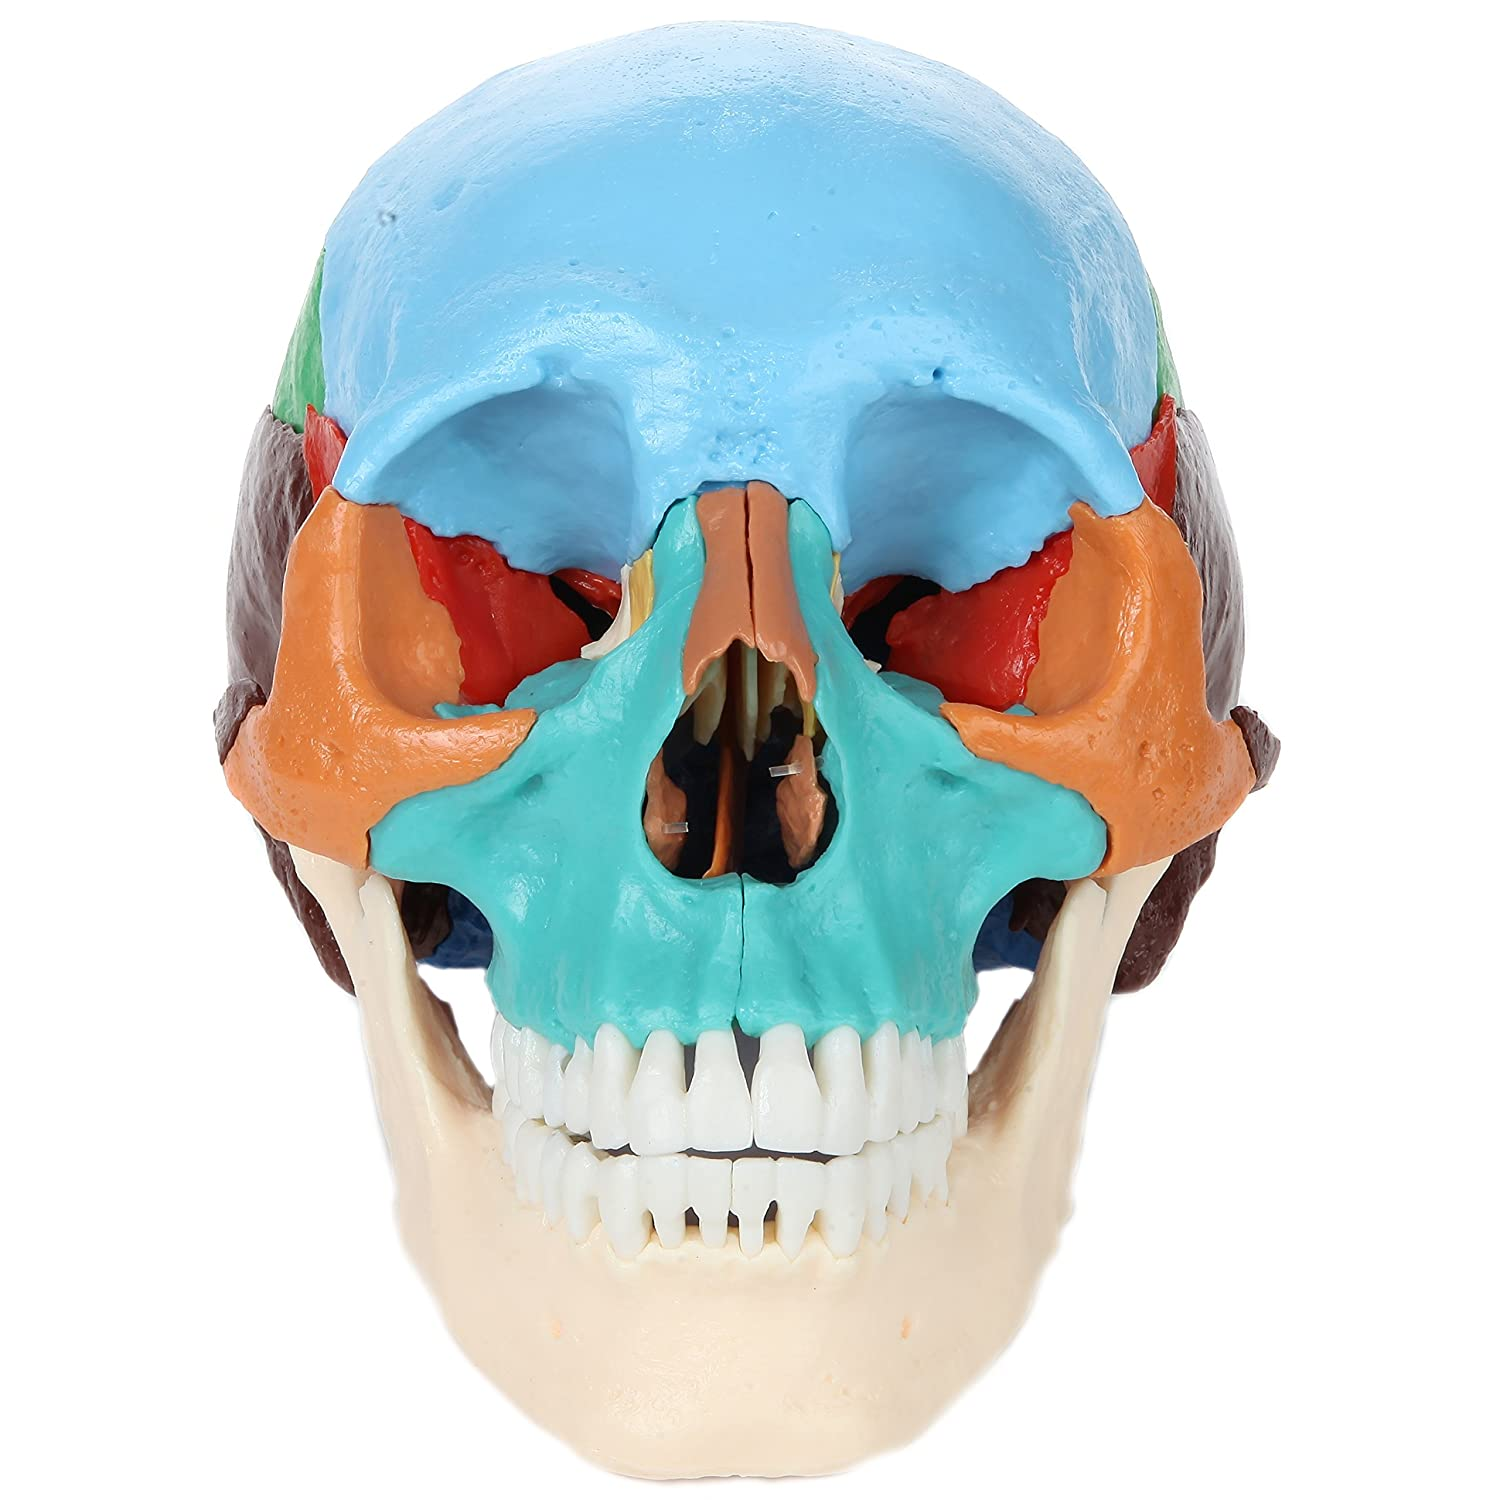 3 Year Warranty Axis Scientific 3-Part Human Skull Model with Removable 8-Part Brain Life Size Plastic Skull is Molded from a Real Human Skull Includes Detailed Product Manual